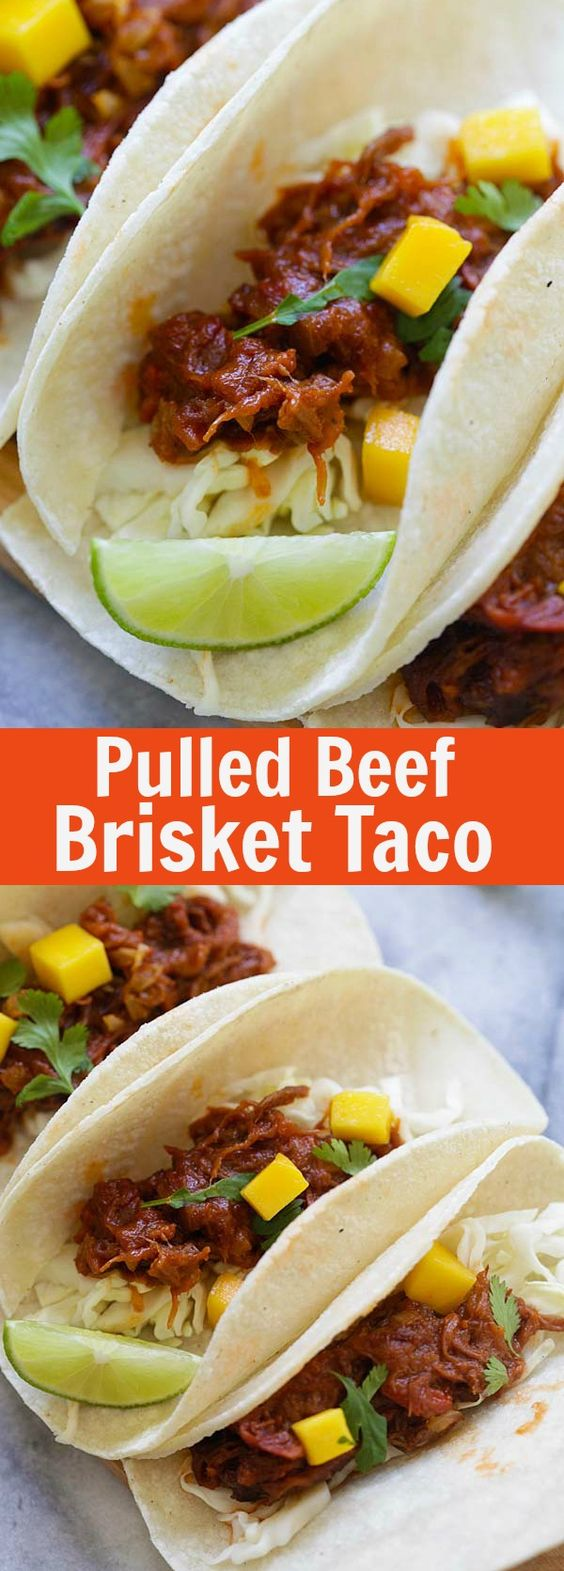 Pulled Beef Brisket Taco - the easiest homemade beef brisket taco with ...